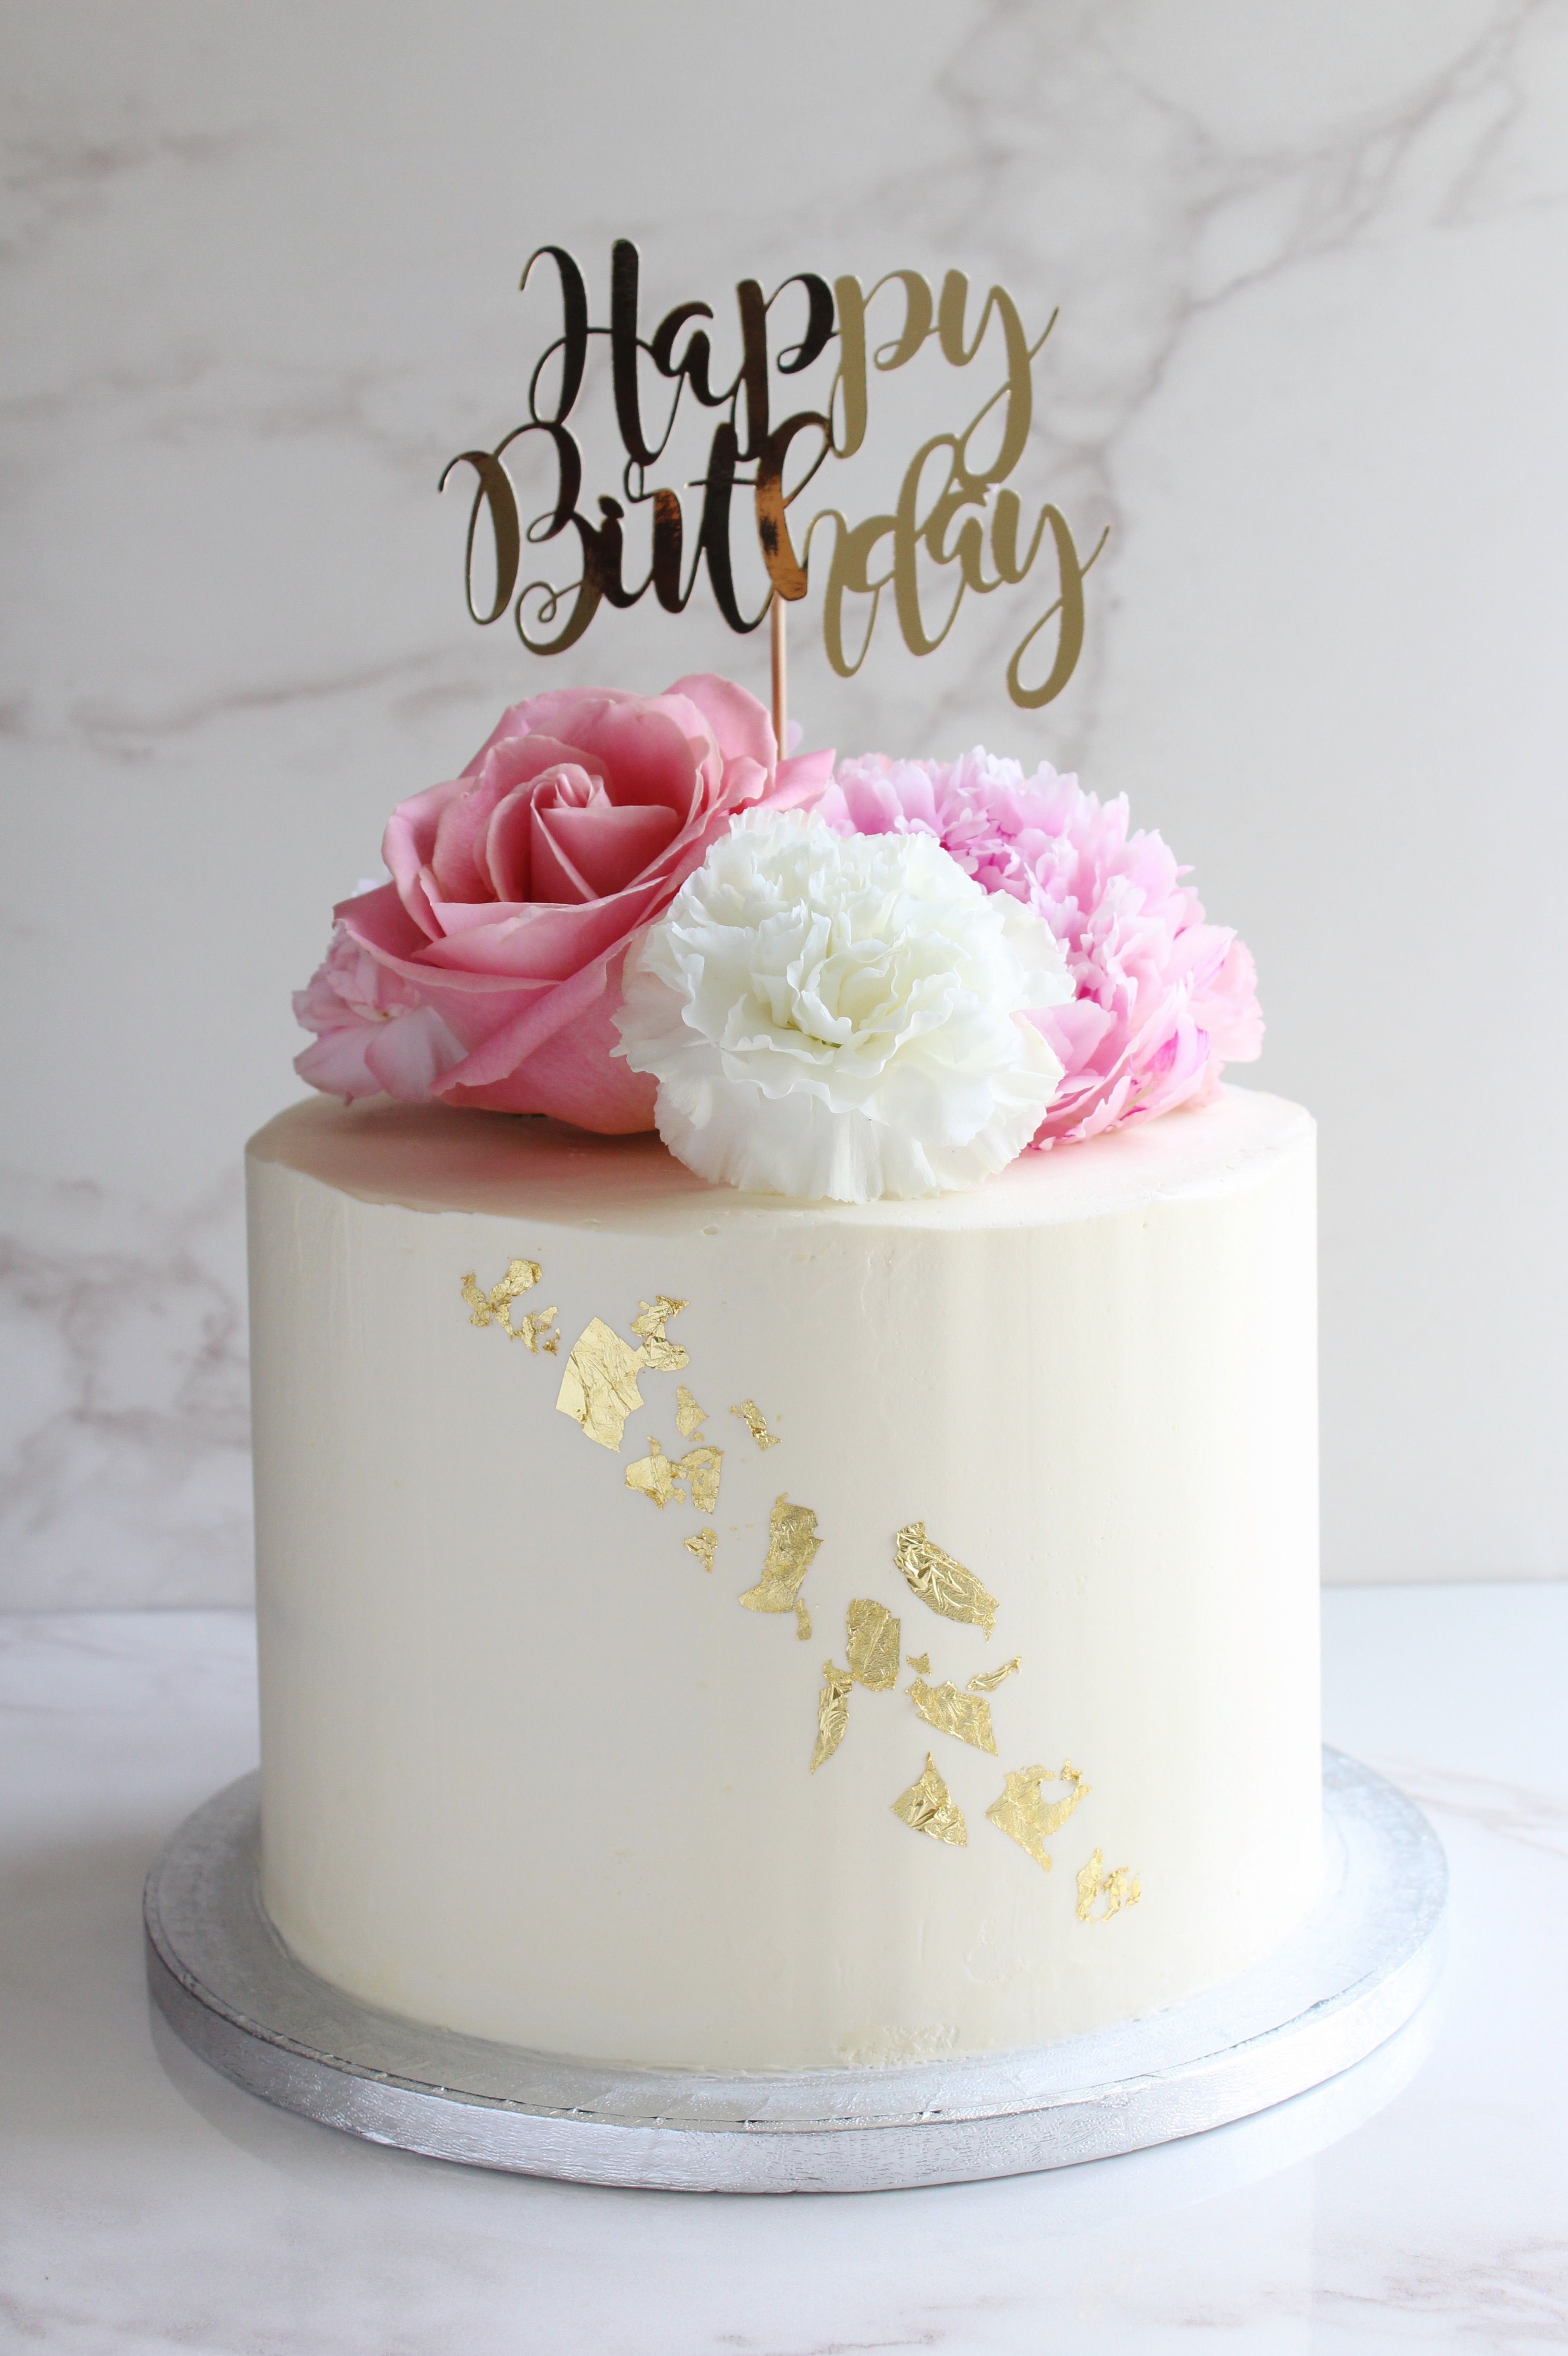 Astounding Lemon And Elderflower Cake With Fresh Flowers And Gold Leaf With Funny Birthday Cards Online Alyptdamsfinfo